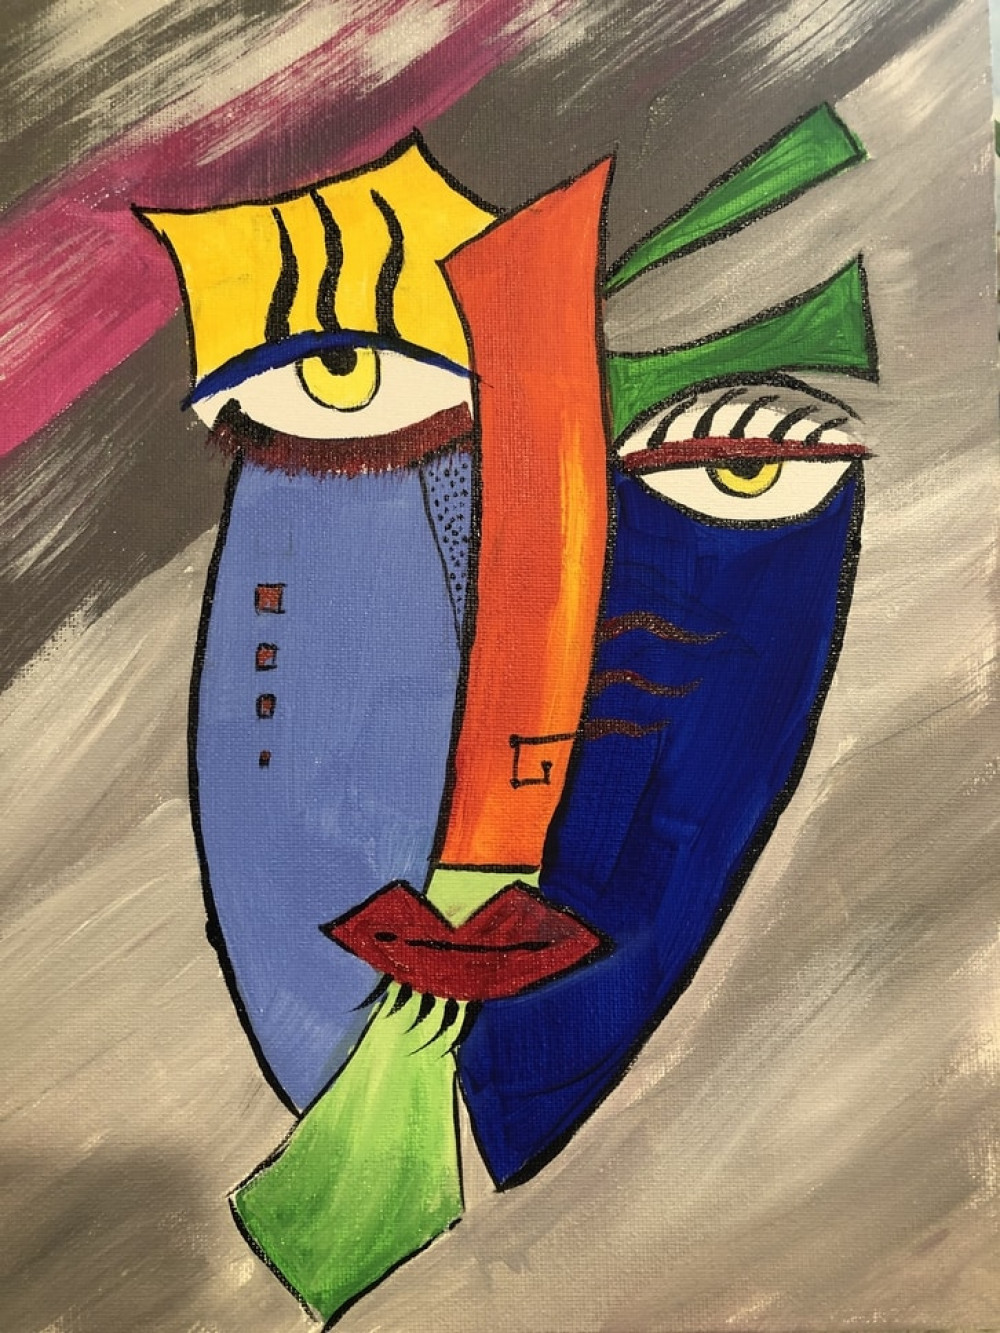 Create your own MASTERPIECE collage inspired by Picasso!